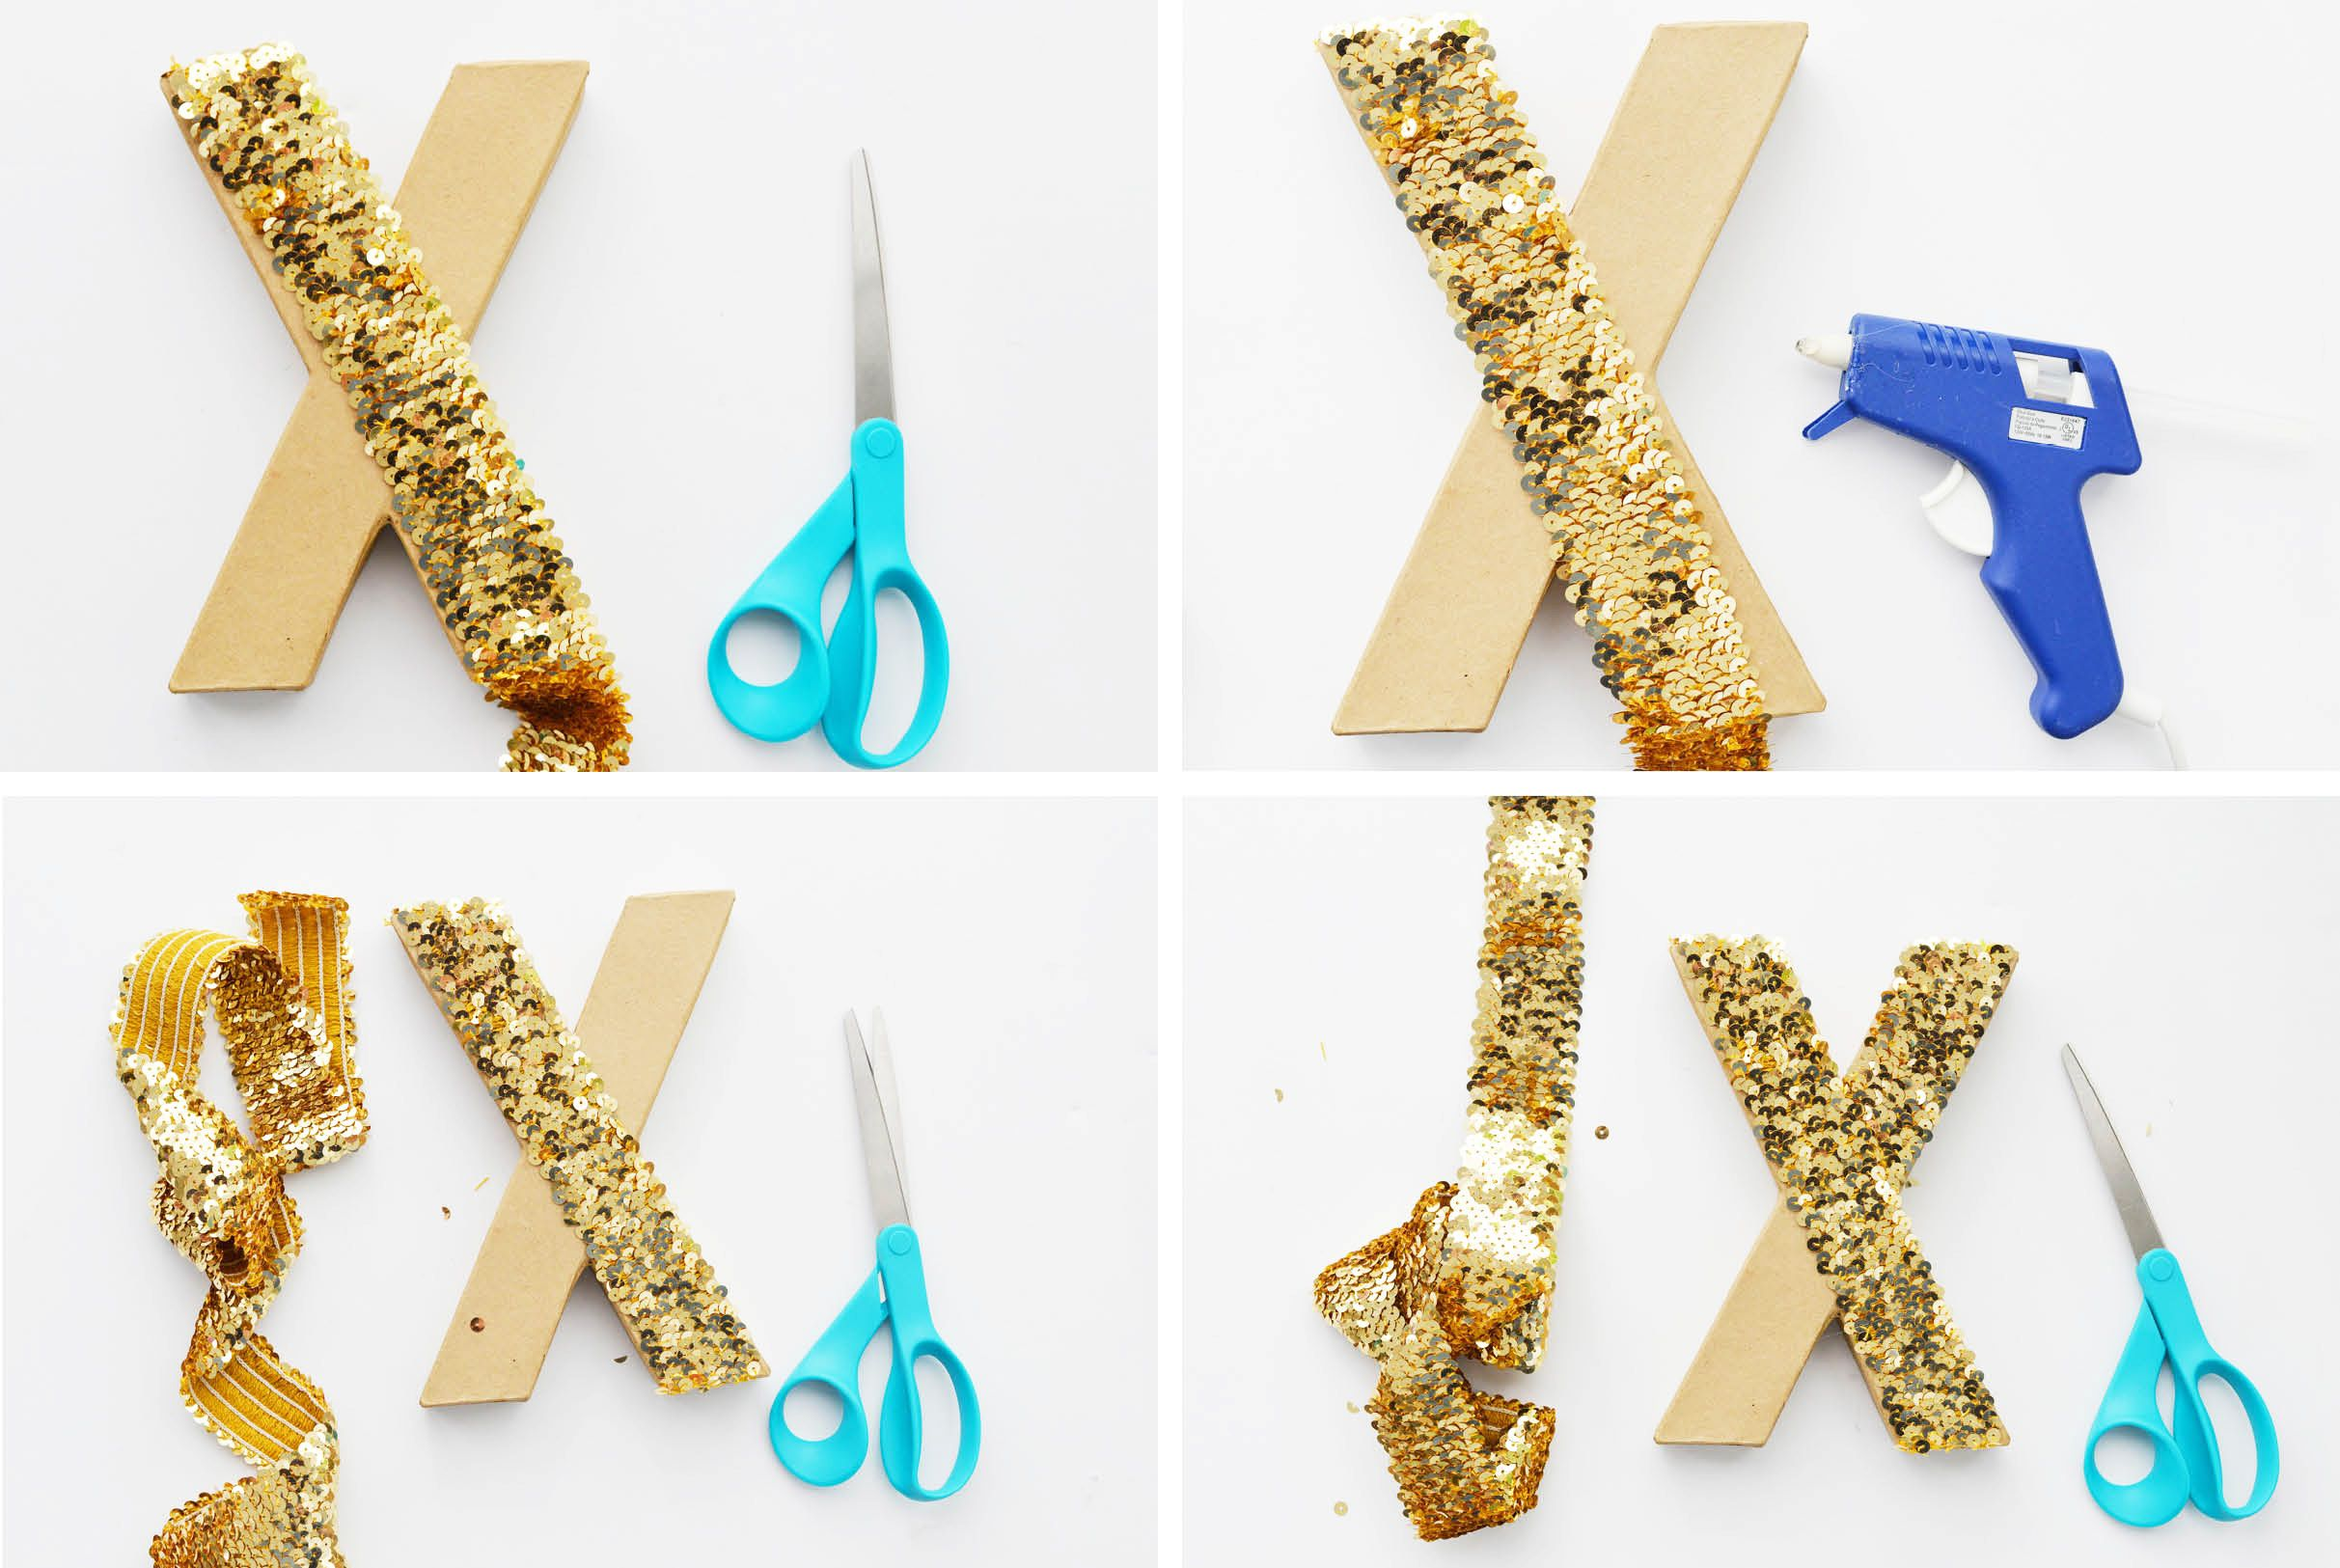 DIY Sequin XOXO Letters Instructions